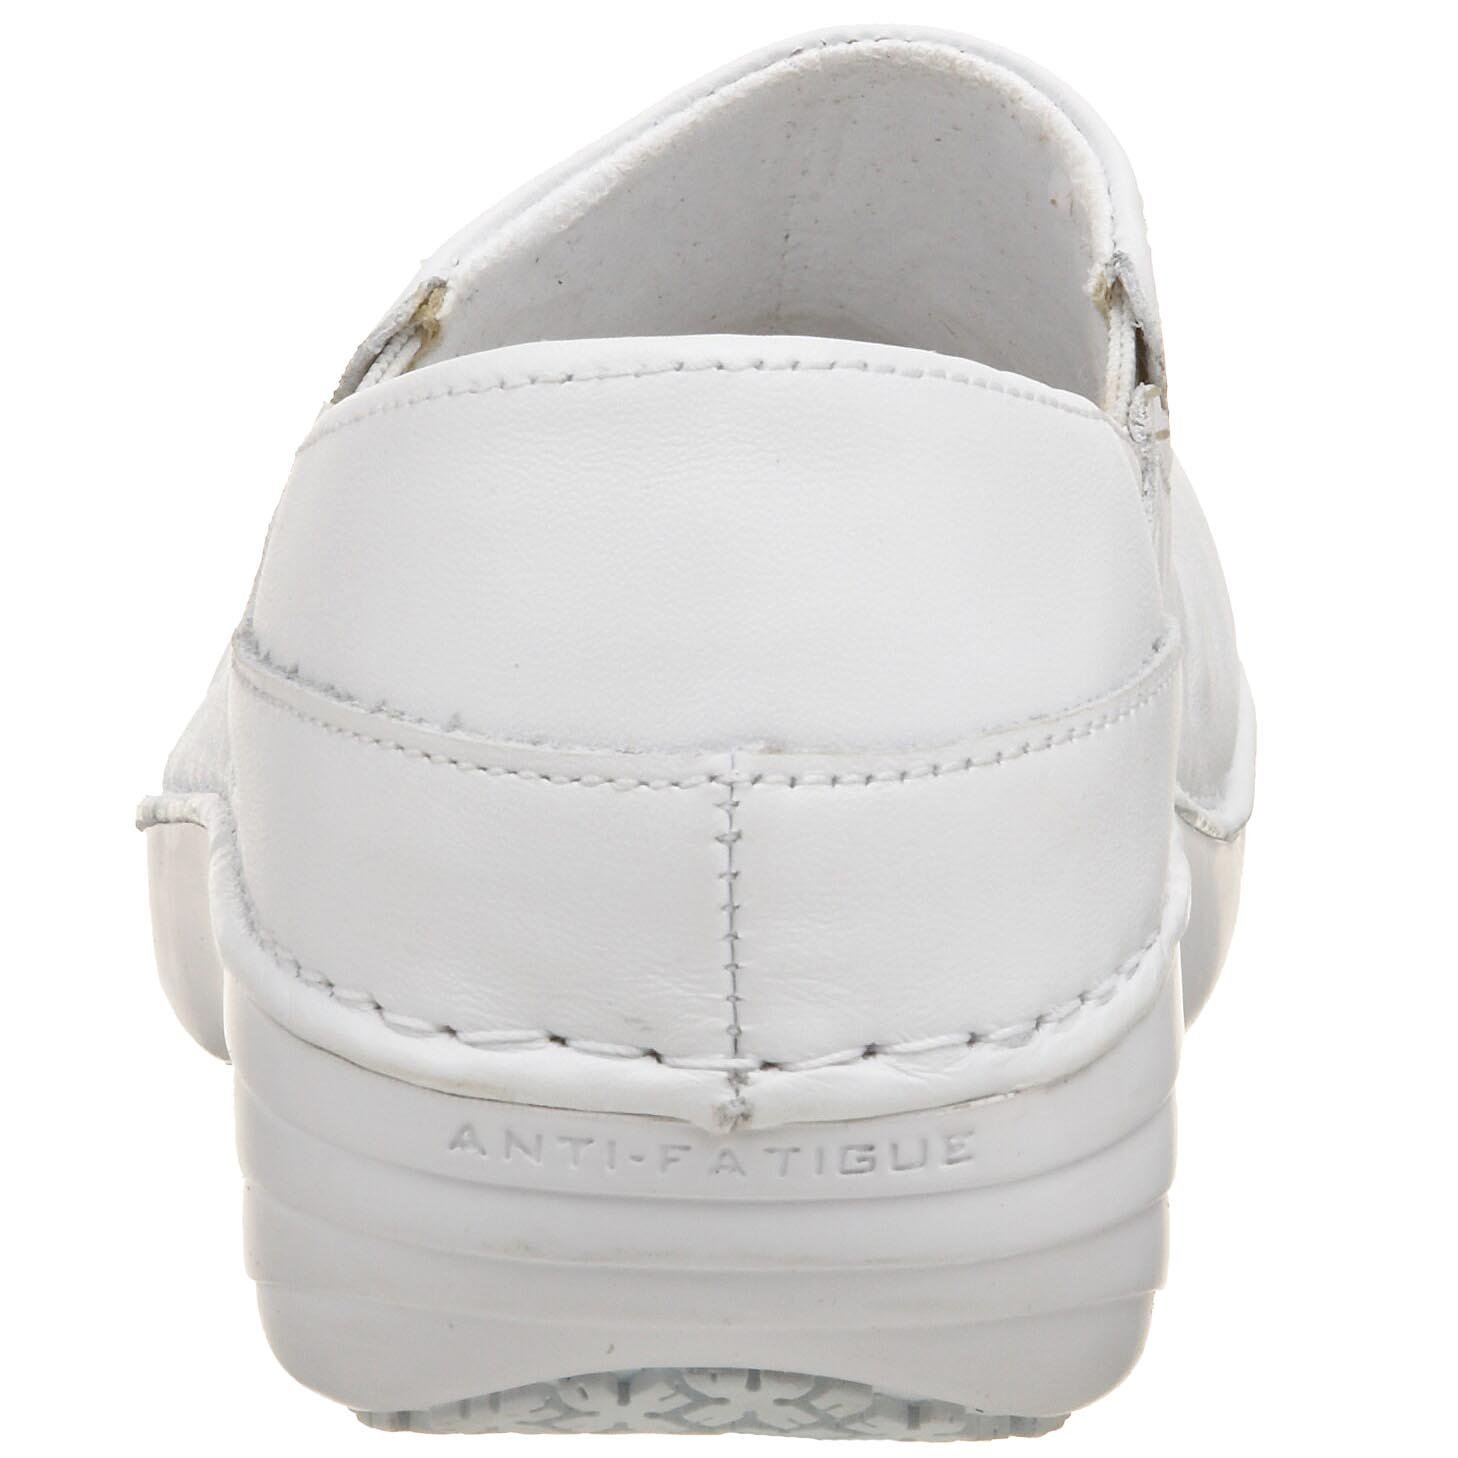 46ebac4f65 Timberland, Mocassini donna, Bianco (bianco), 38: Amazon.it: Scarpe e borse